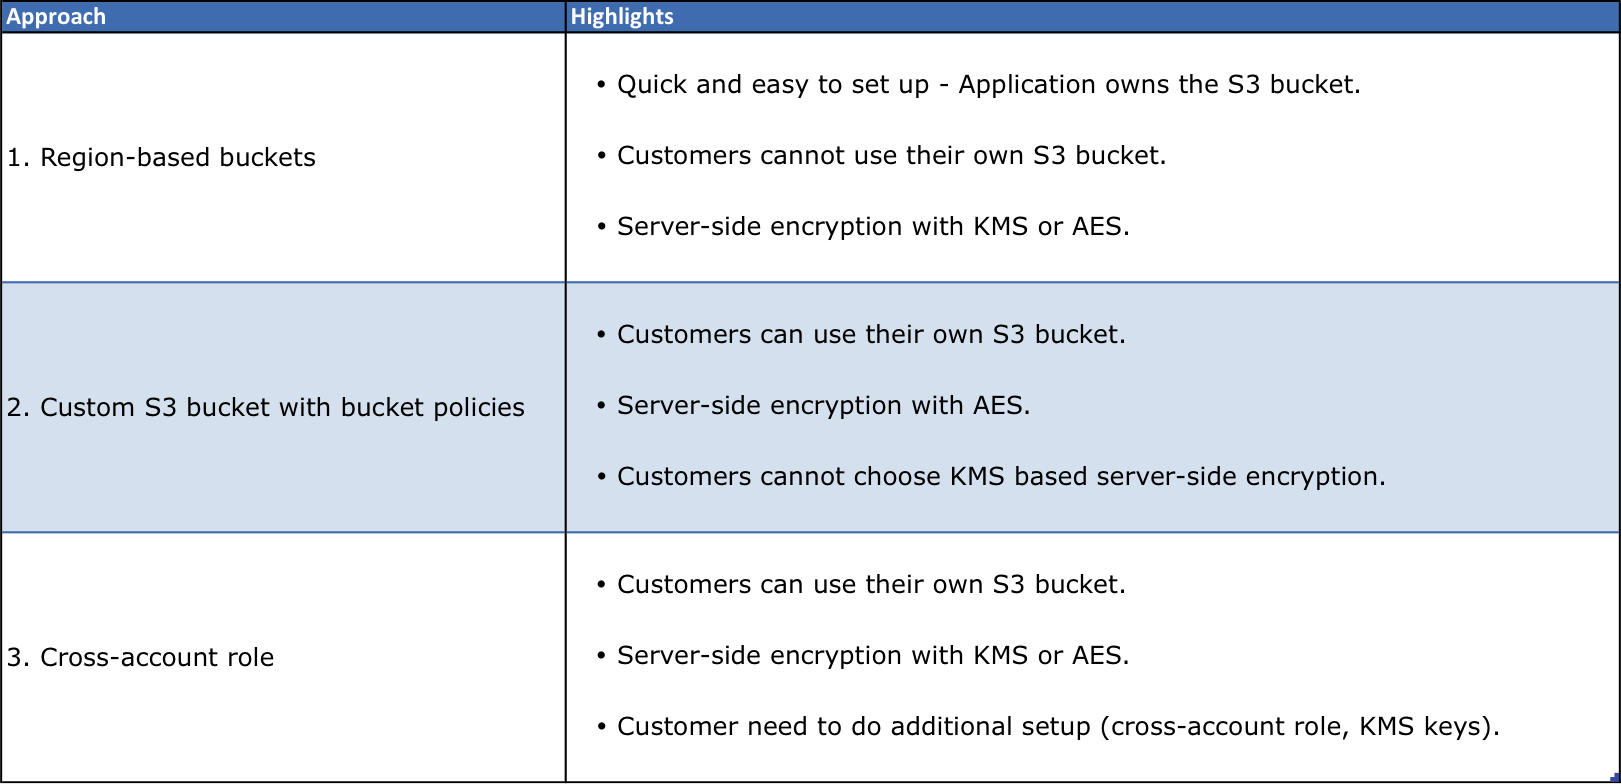 How to configure AWS S3 bucket to store customer data